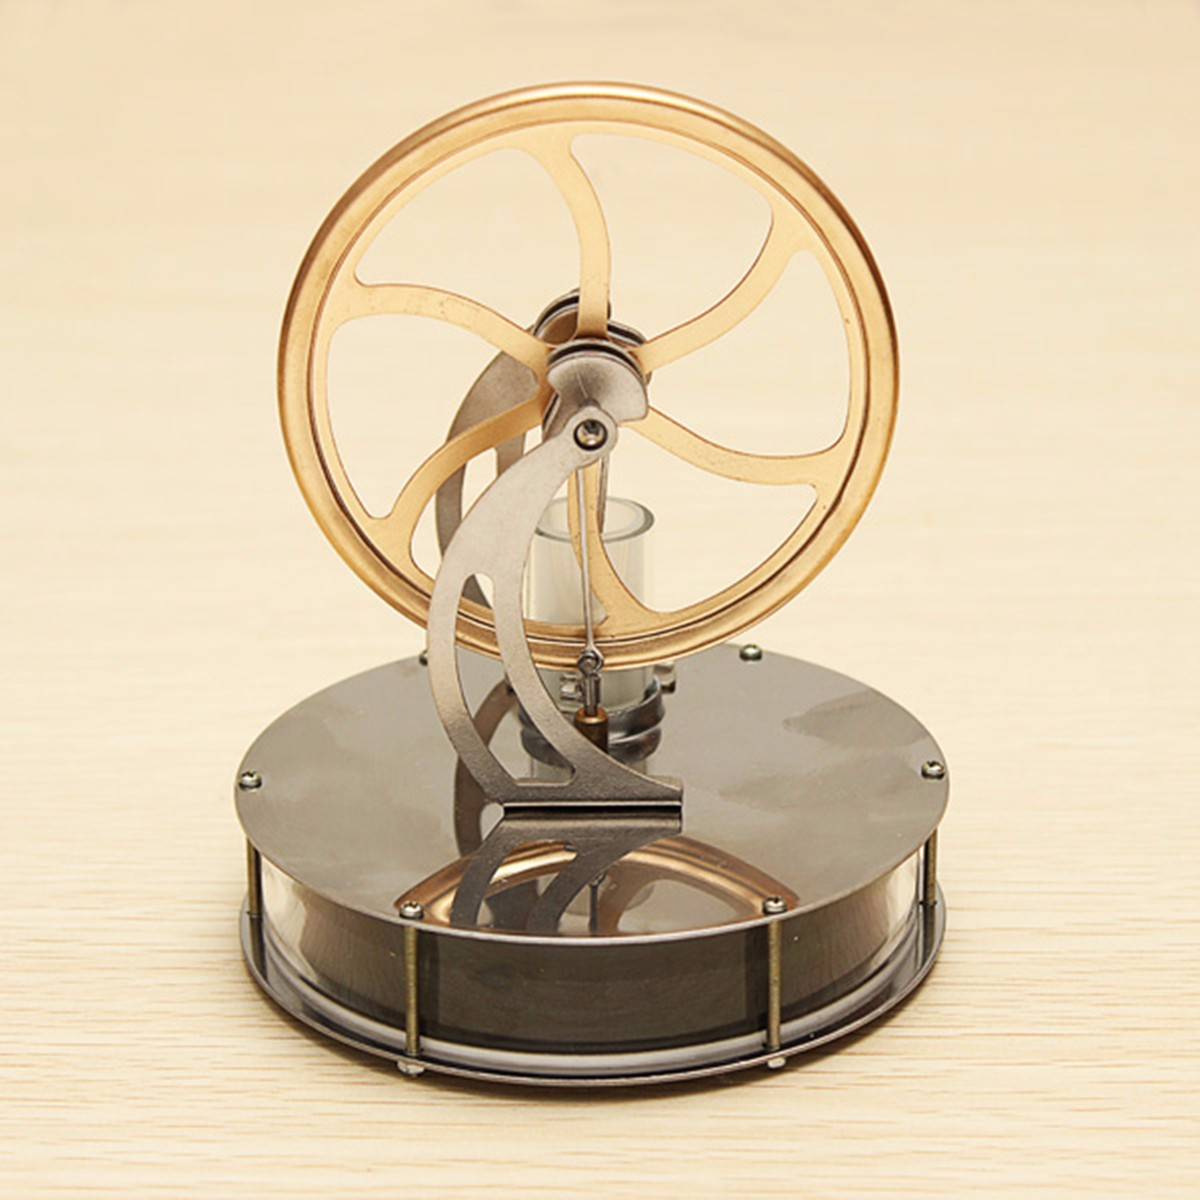 Low Temperature Stirling Engine Motor Model Cool No Steam Children Kid School Educational Equipment Education Teaching Toy GiftLow Temperature Stirling Engine Motor Model Cool No Steam Children Kid School Educational Equipment Education Teaching Toy Gift